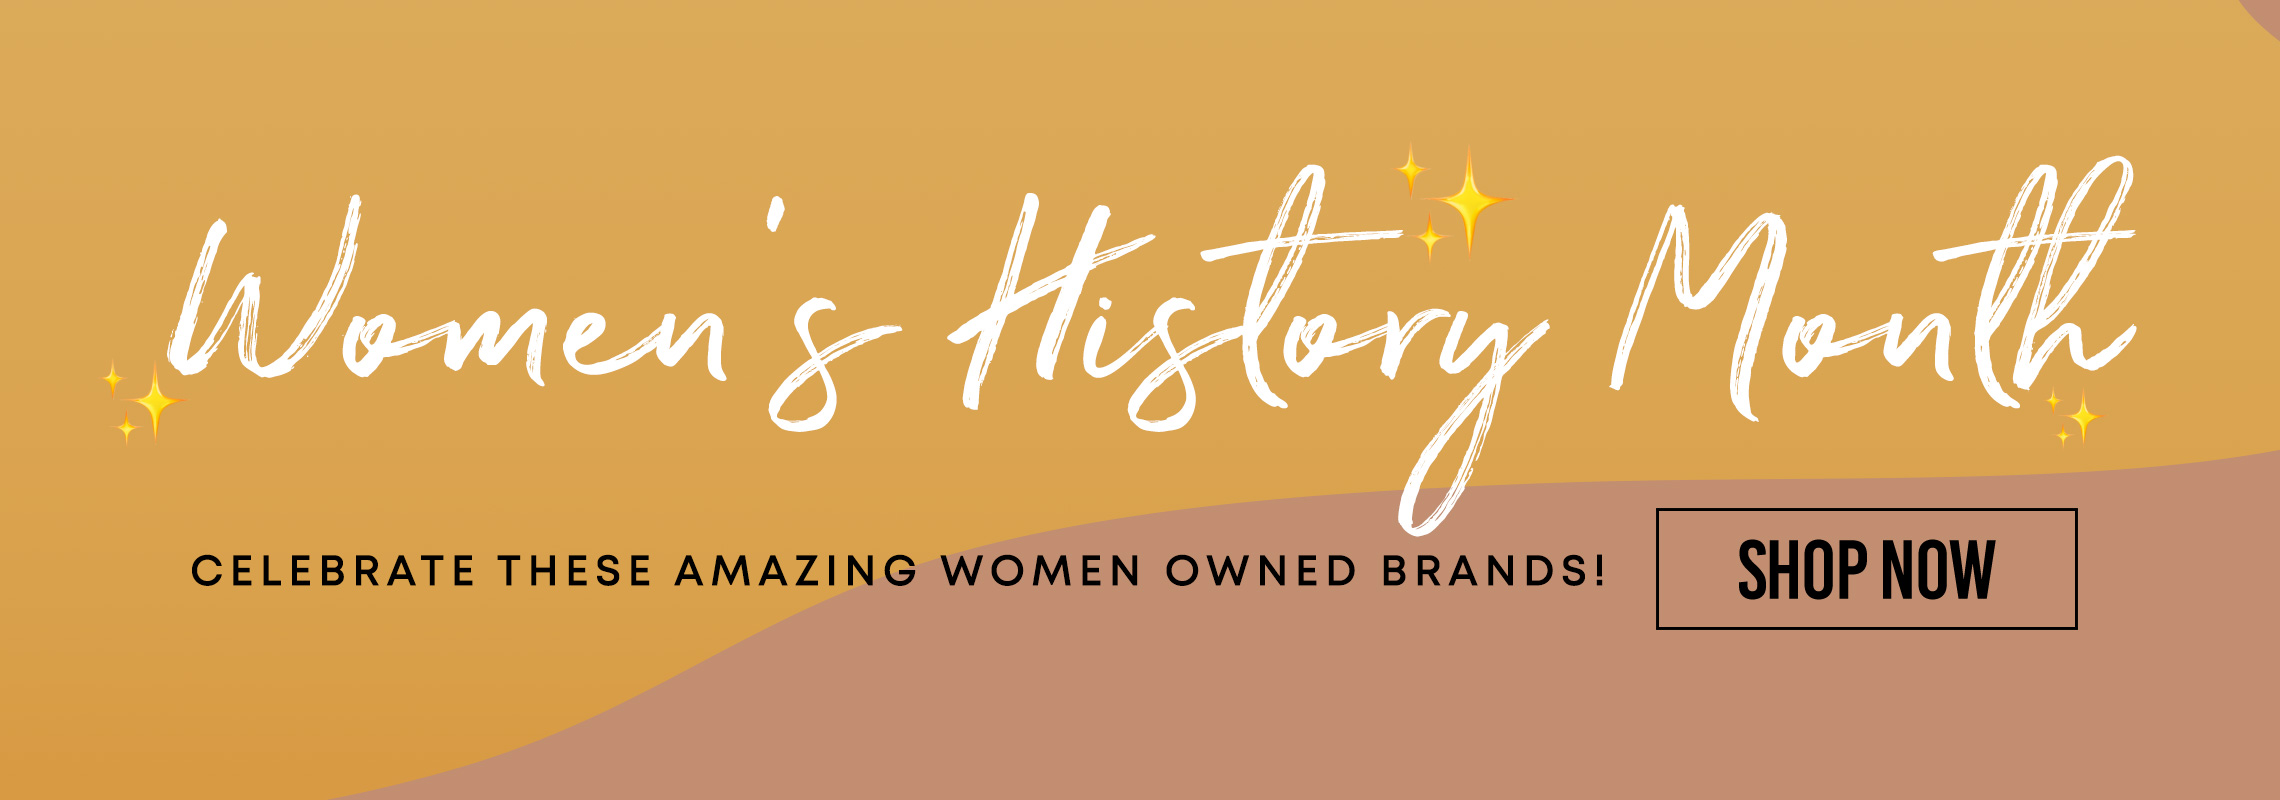 https://shop.naturallycurly.com/product_images/uploaded_images/womanshistory-mobile-2x.jpg